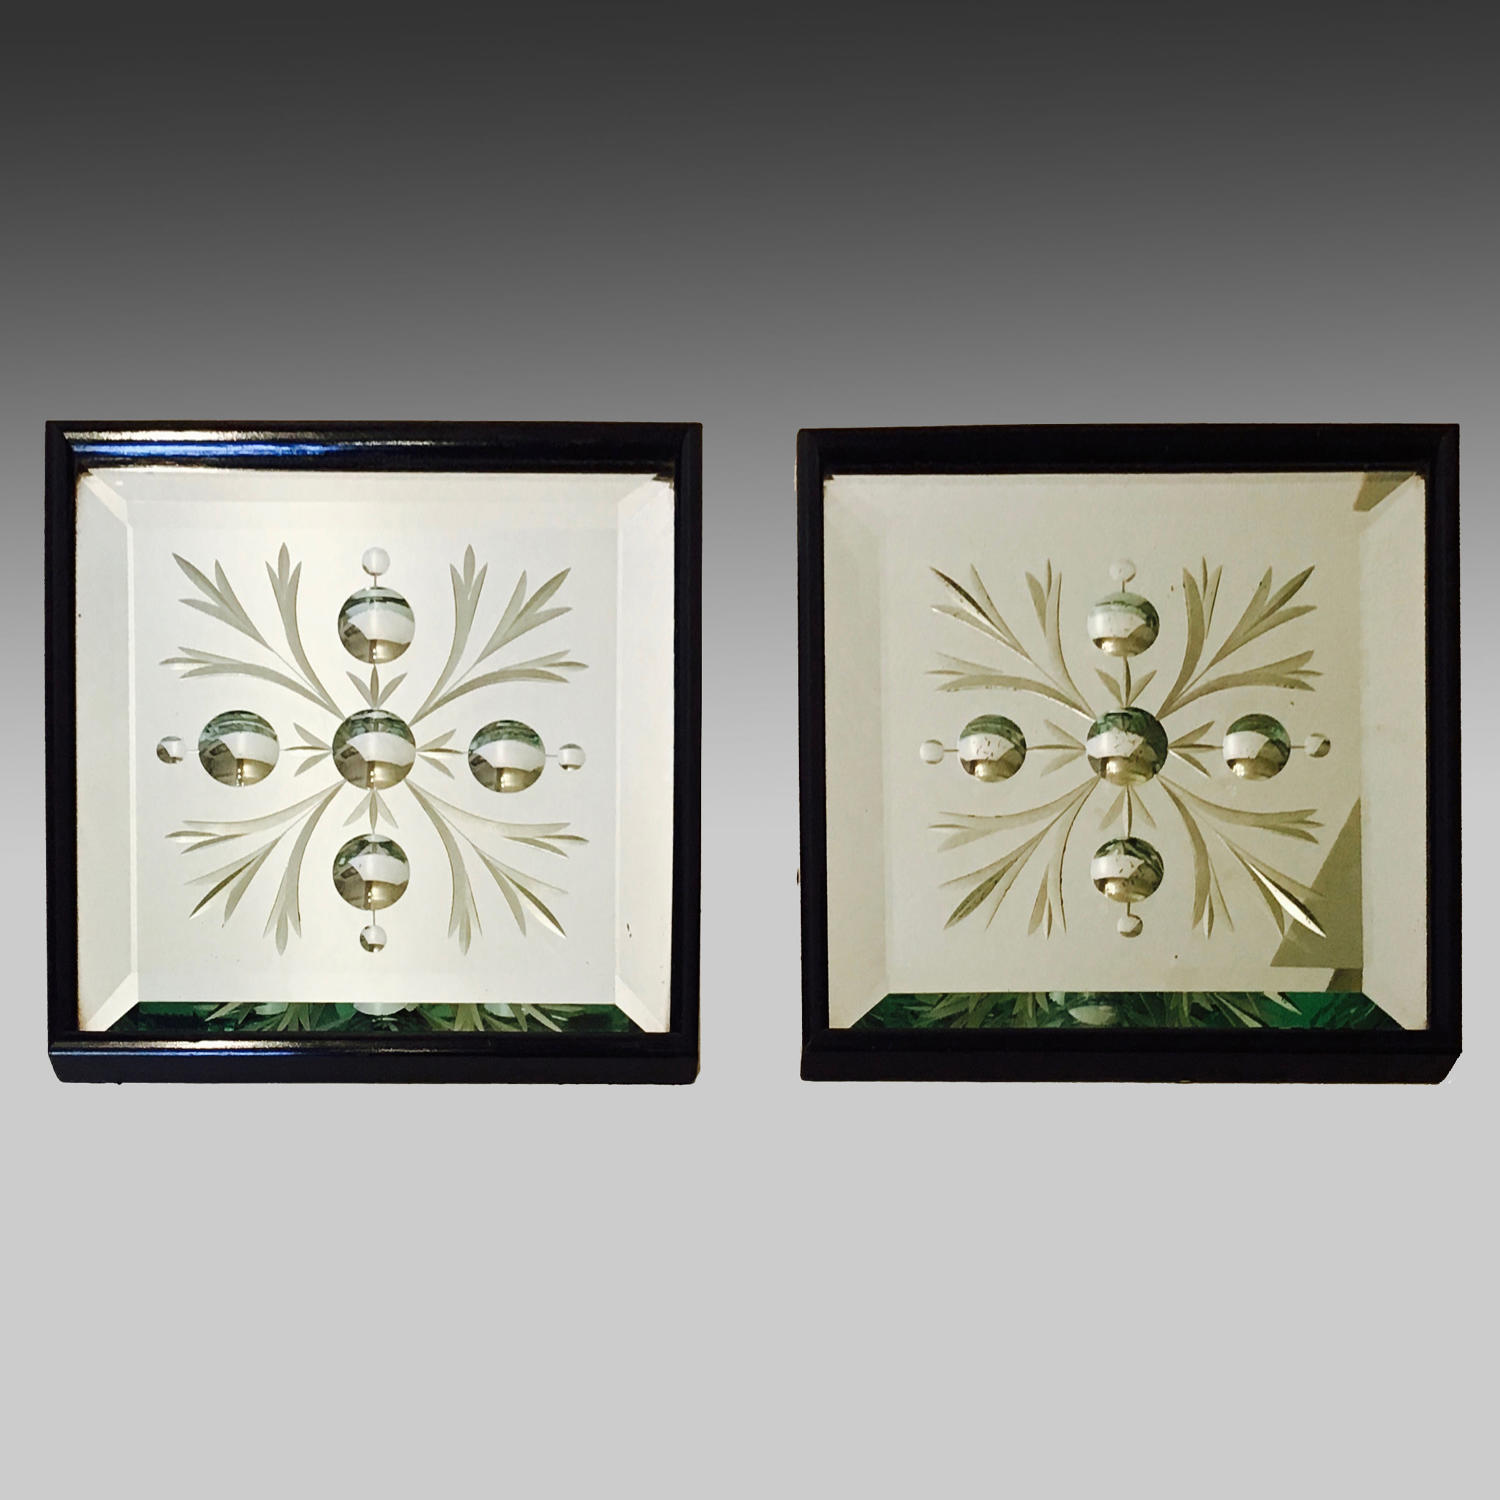 Pair of Art Nouveau mirrored wall plaques